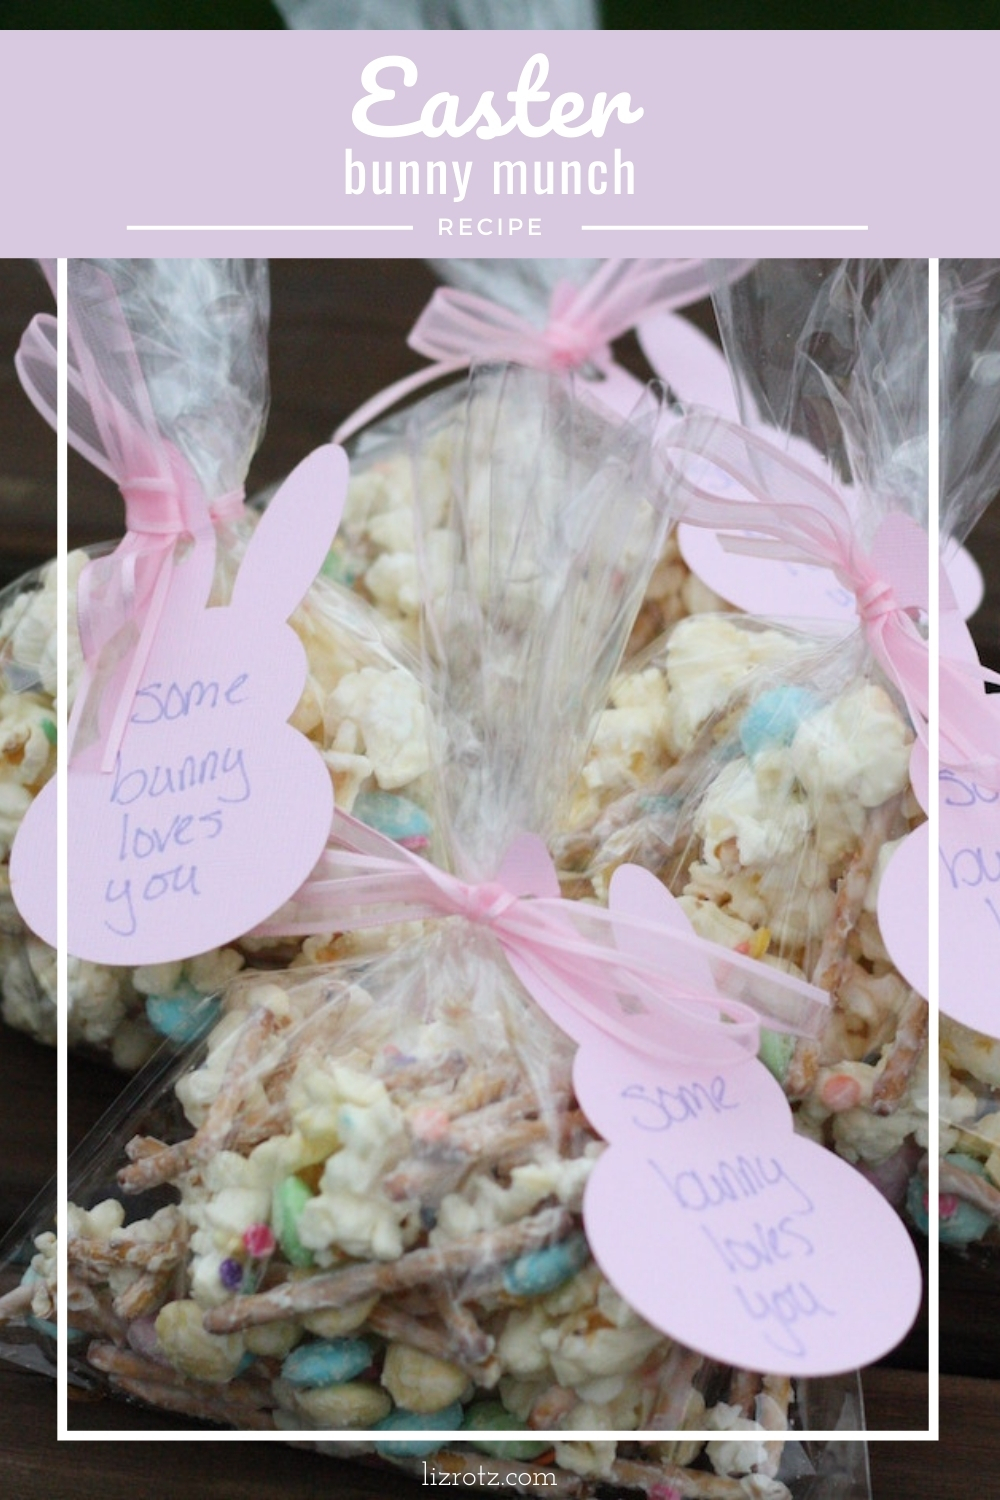 Easter Bunny Munch - an easy no-bake treat to make with your kids! from Liz of lizrotz.com